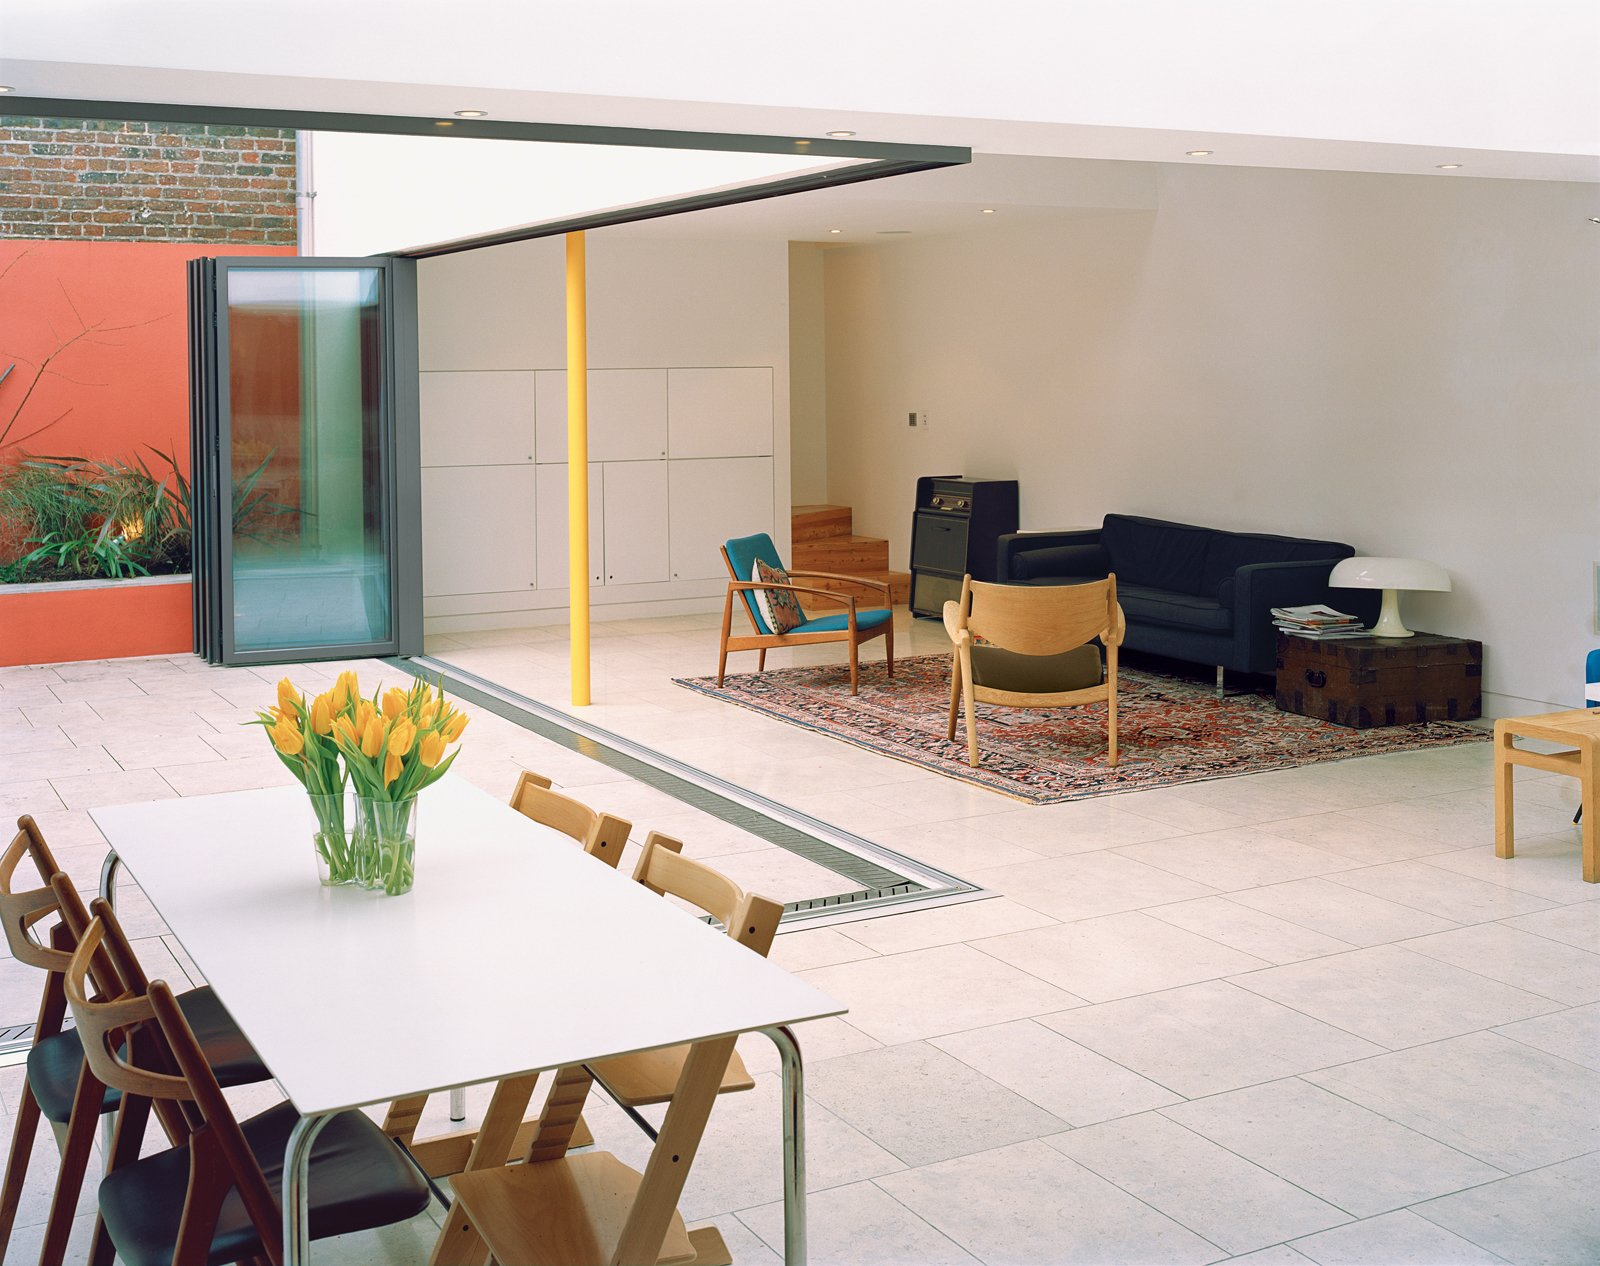 The glass wall separating the main living area and the inner courtyard garden opens like an accordion to create a barrier-free transition. Built-in planters along the walls of the courtyard add greenery without eating into the valuable surface   area of the courtyard. Brilliant Examples of Indoor-Outdoor Homes by Zachary Edelson